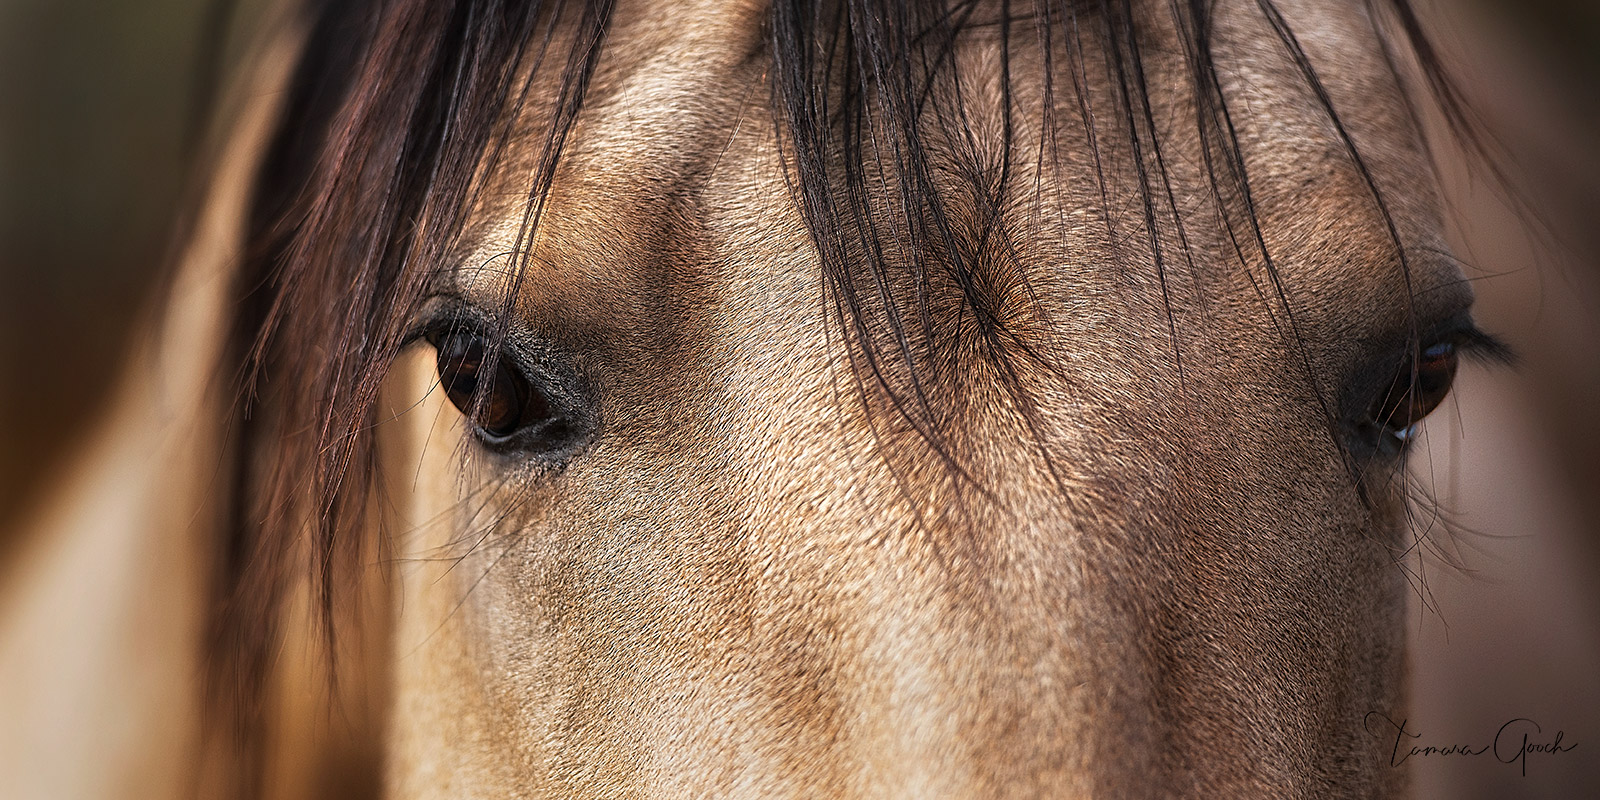 equus, cheval, caballos, buckskin, eyes, closeup, pano, luxury, home decor, interior design, horse, equine, art, print, fine, art, limited, edition, fire place, living room, , photo